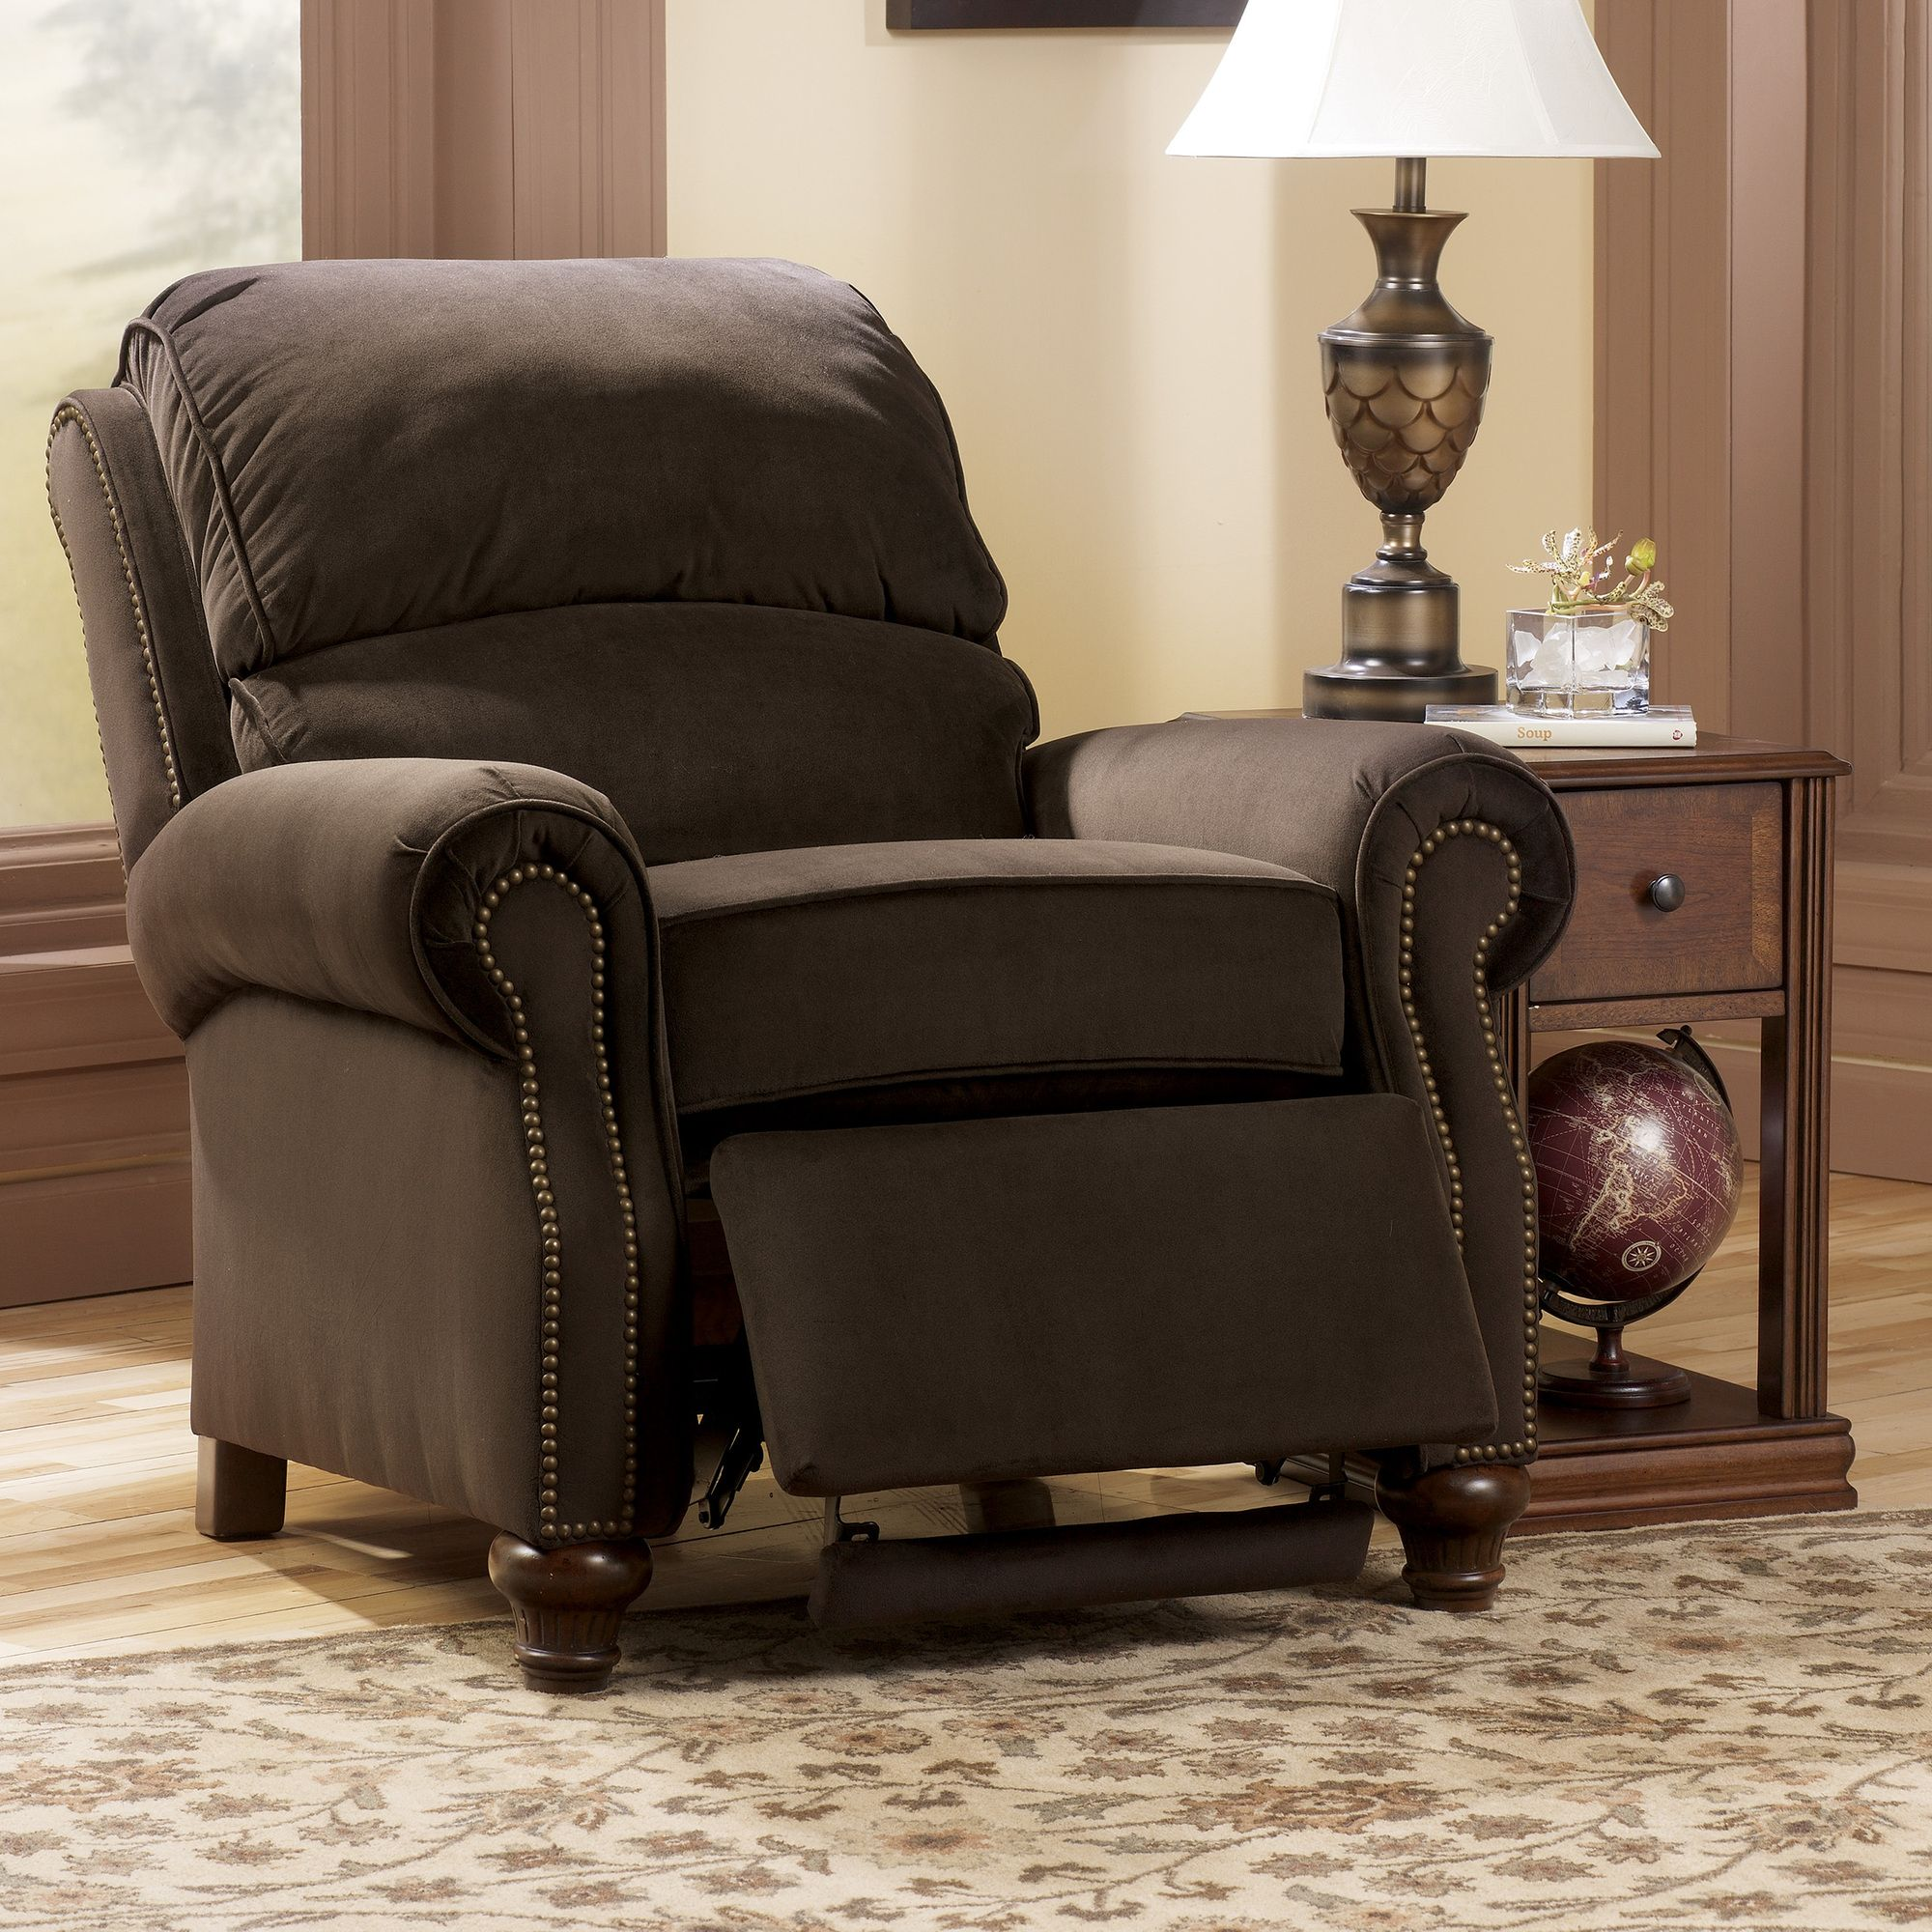 Recliner for Chadpromised in next house Furniture